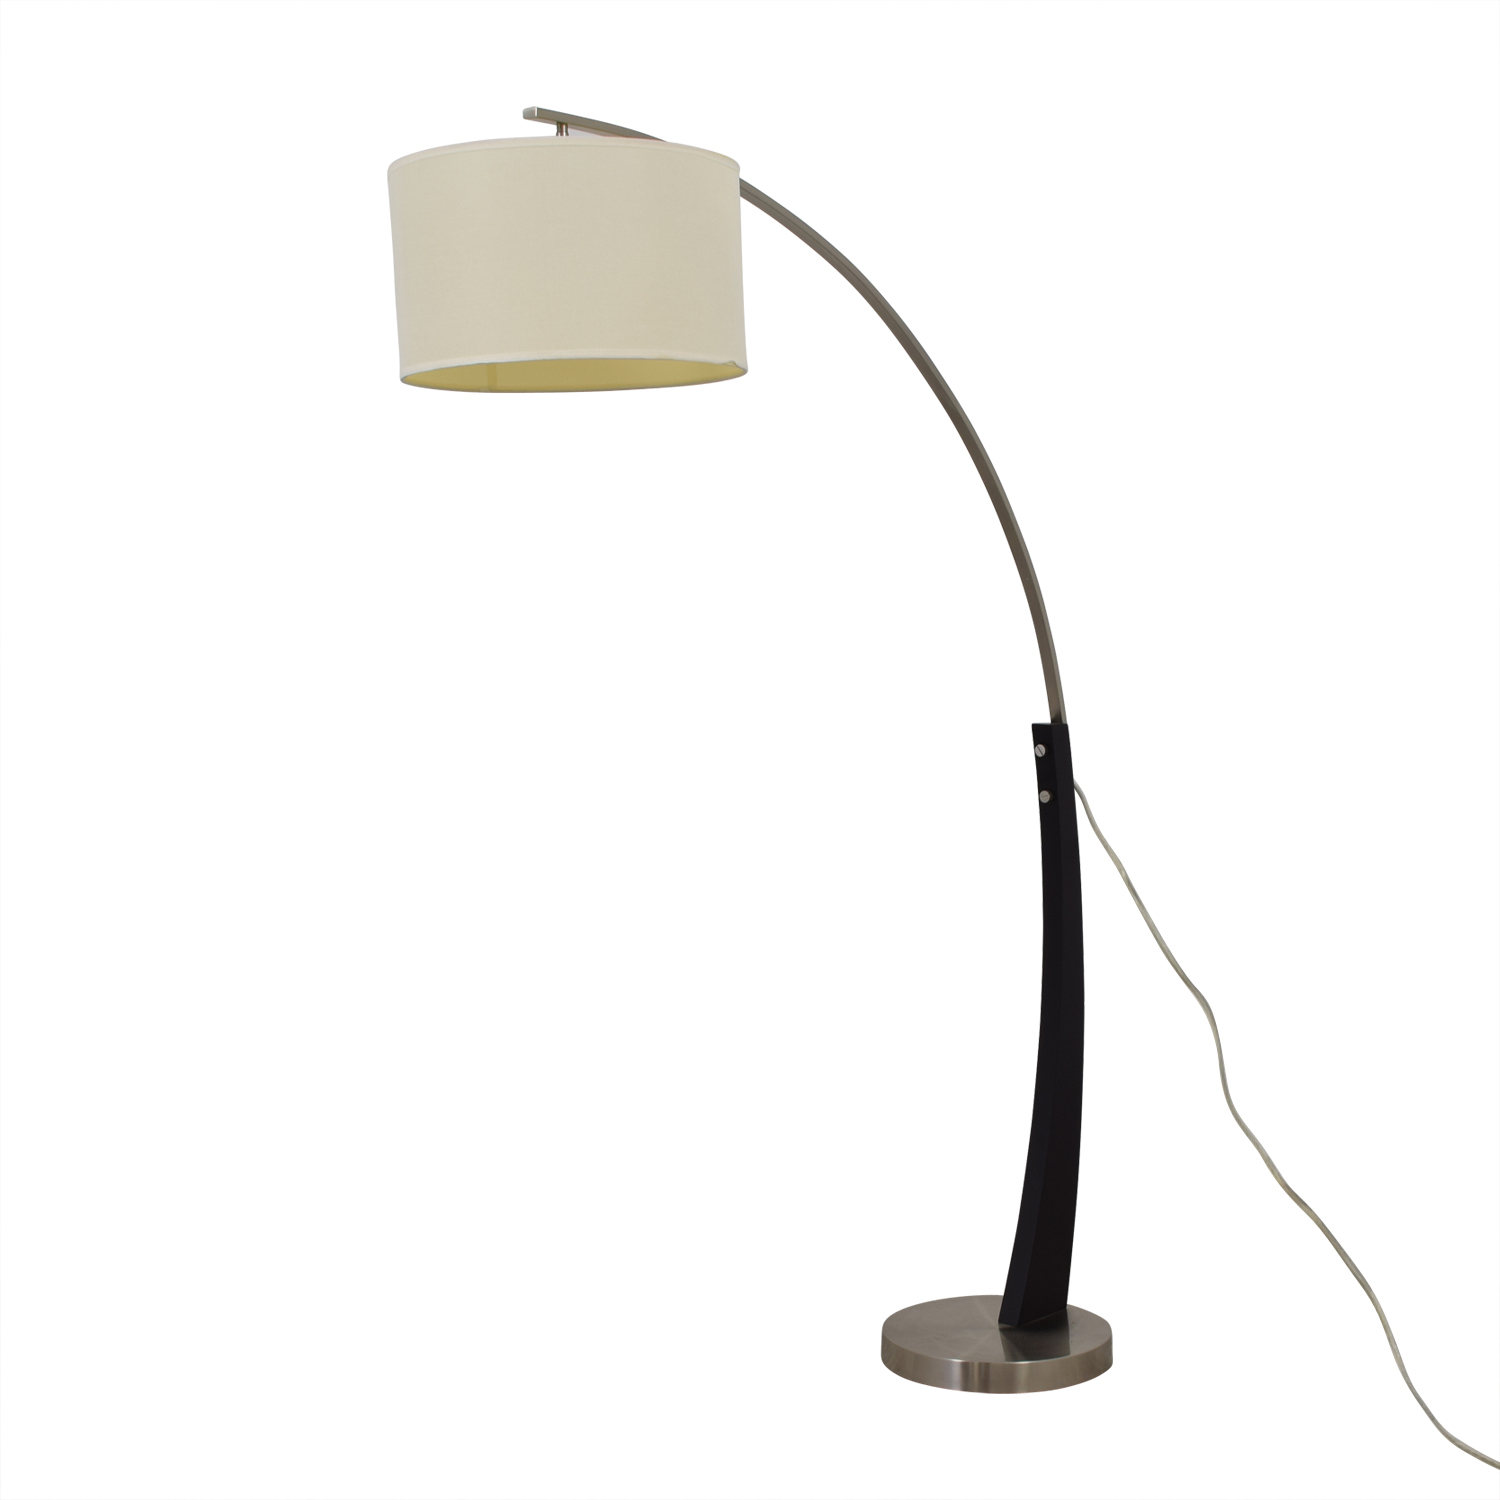 55 off nova nova floor lamp decor nova floor lamp sale aloadofball